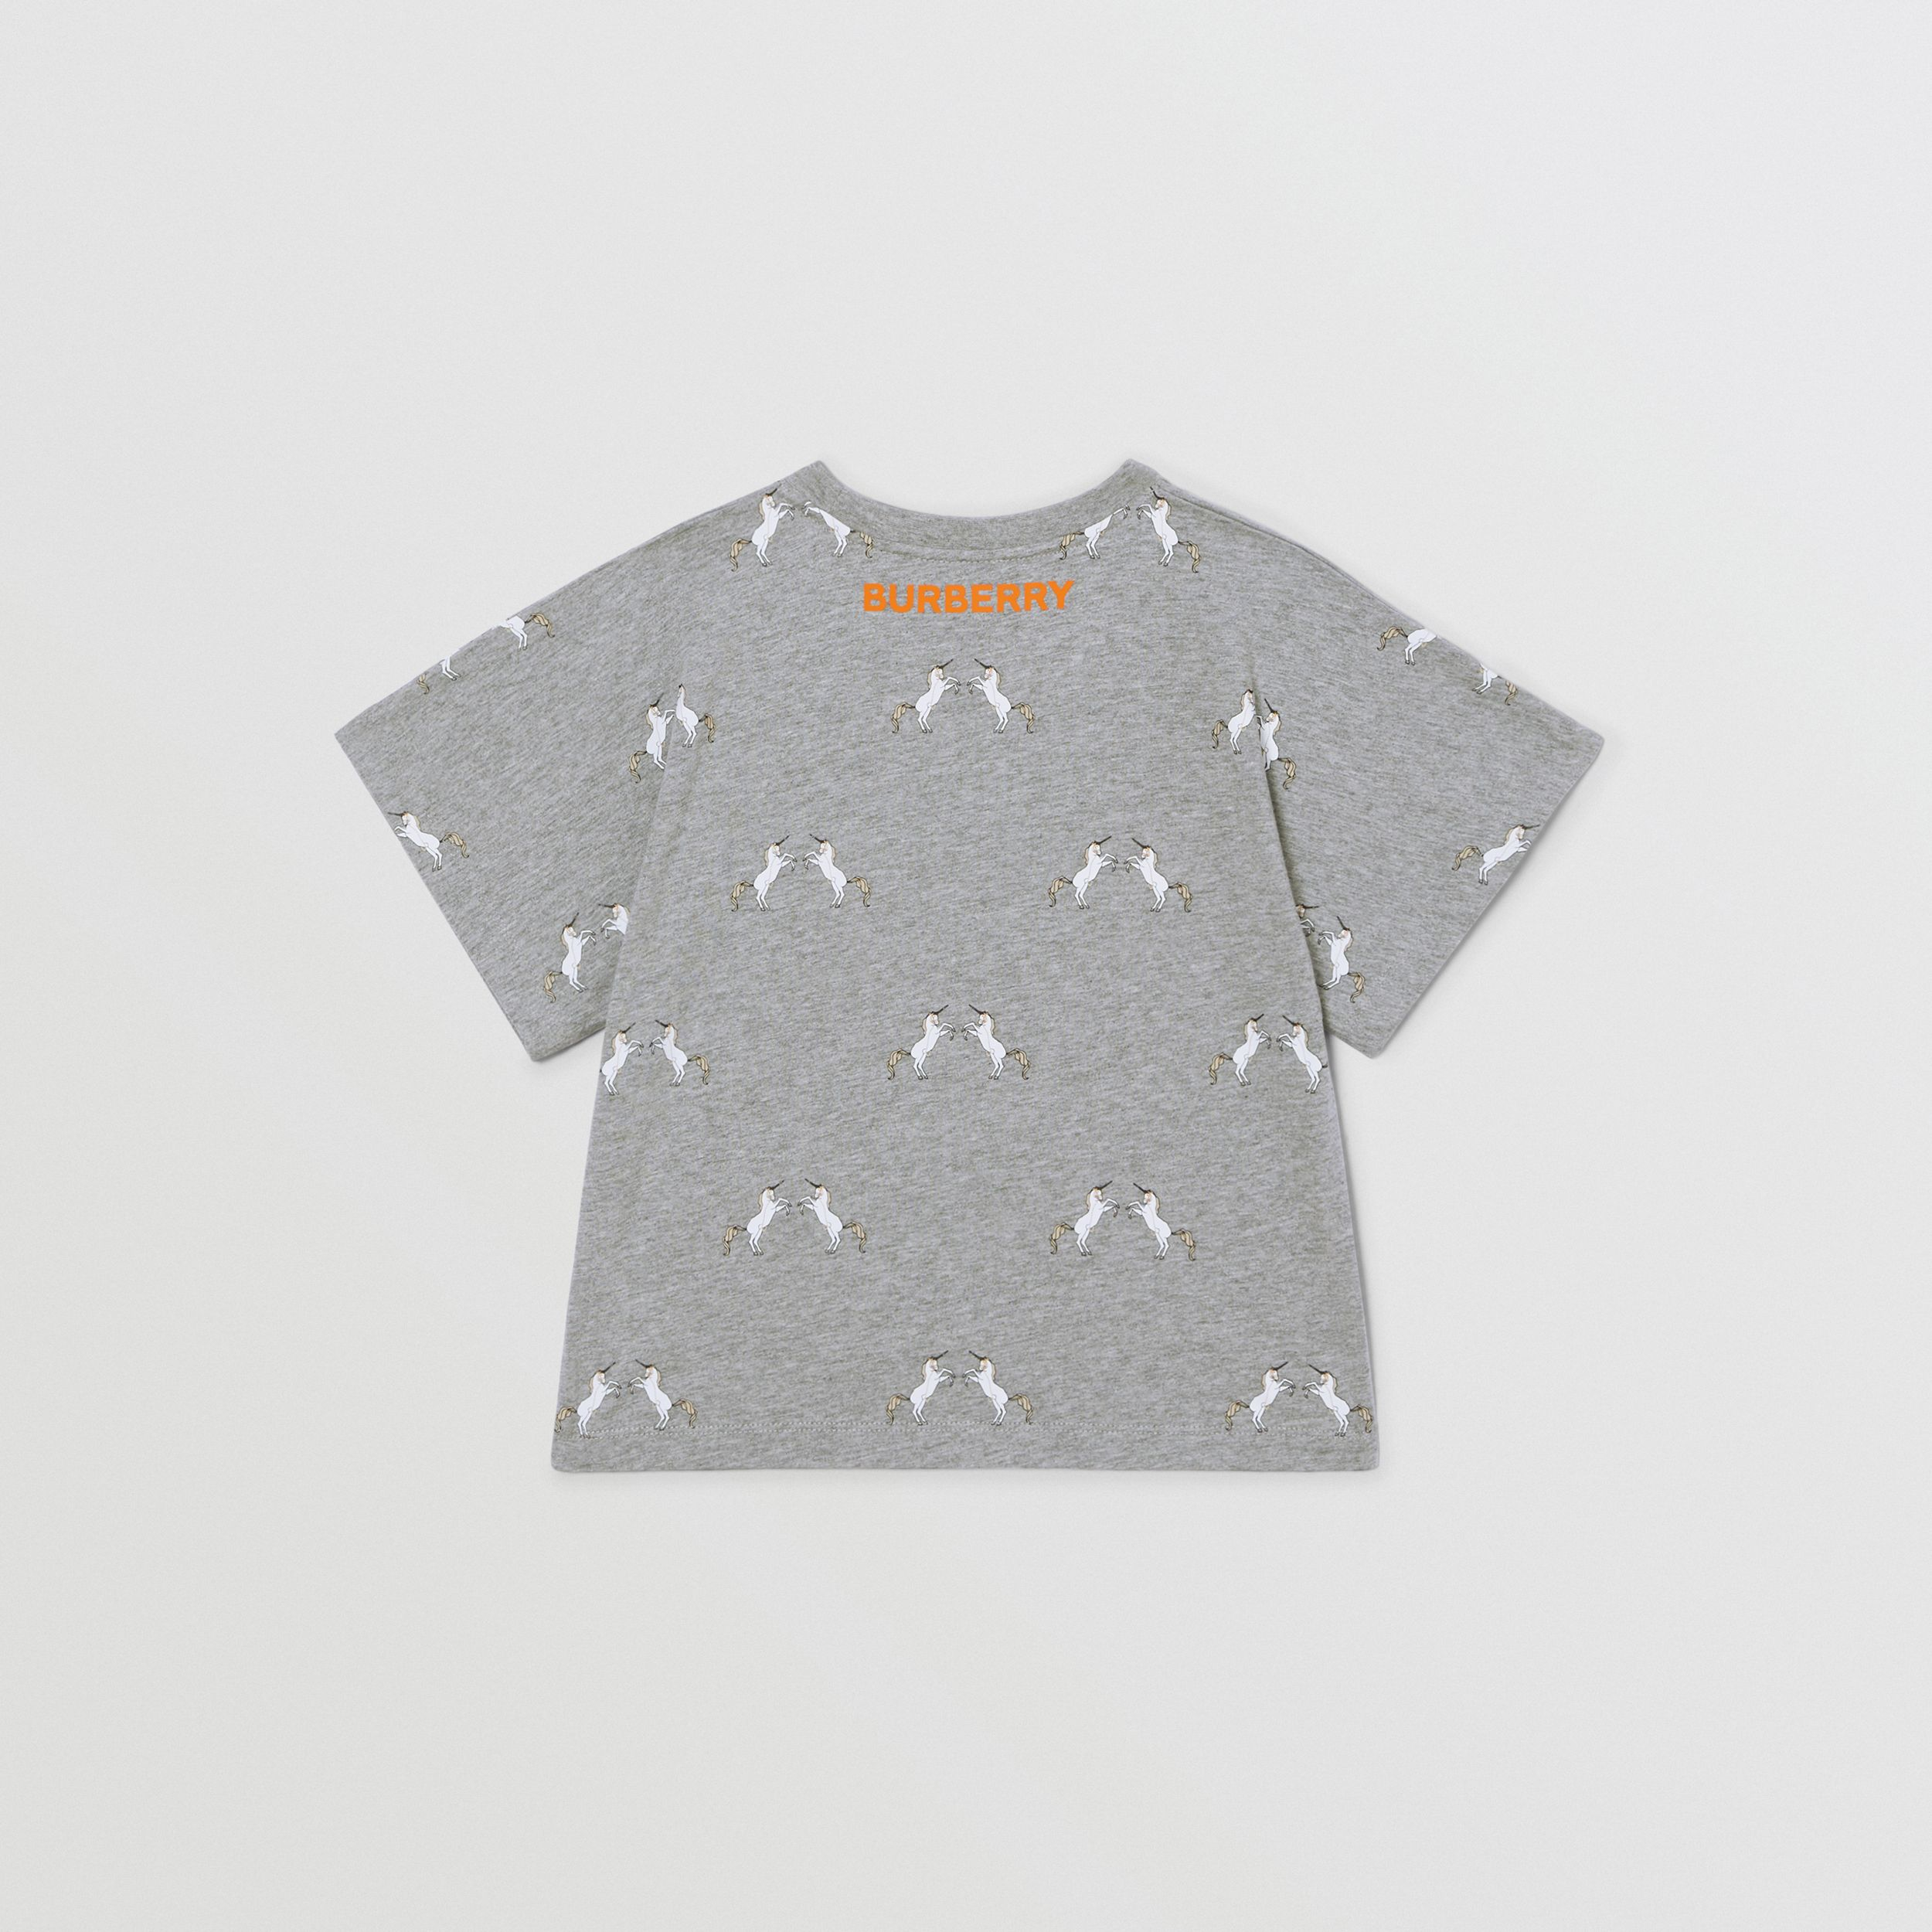 Unicorn Slogan Print Cotton T-shirt in Grey Melange | Burberry Hong Kong S.A.R. - 4